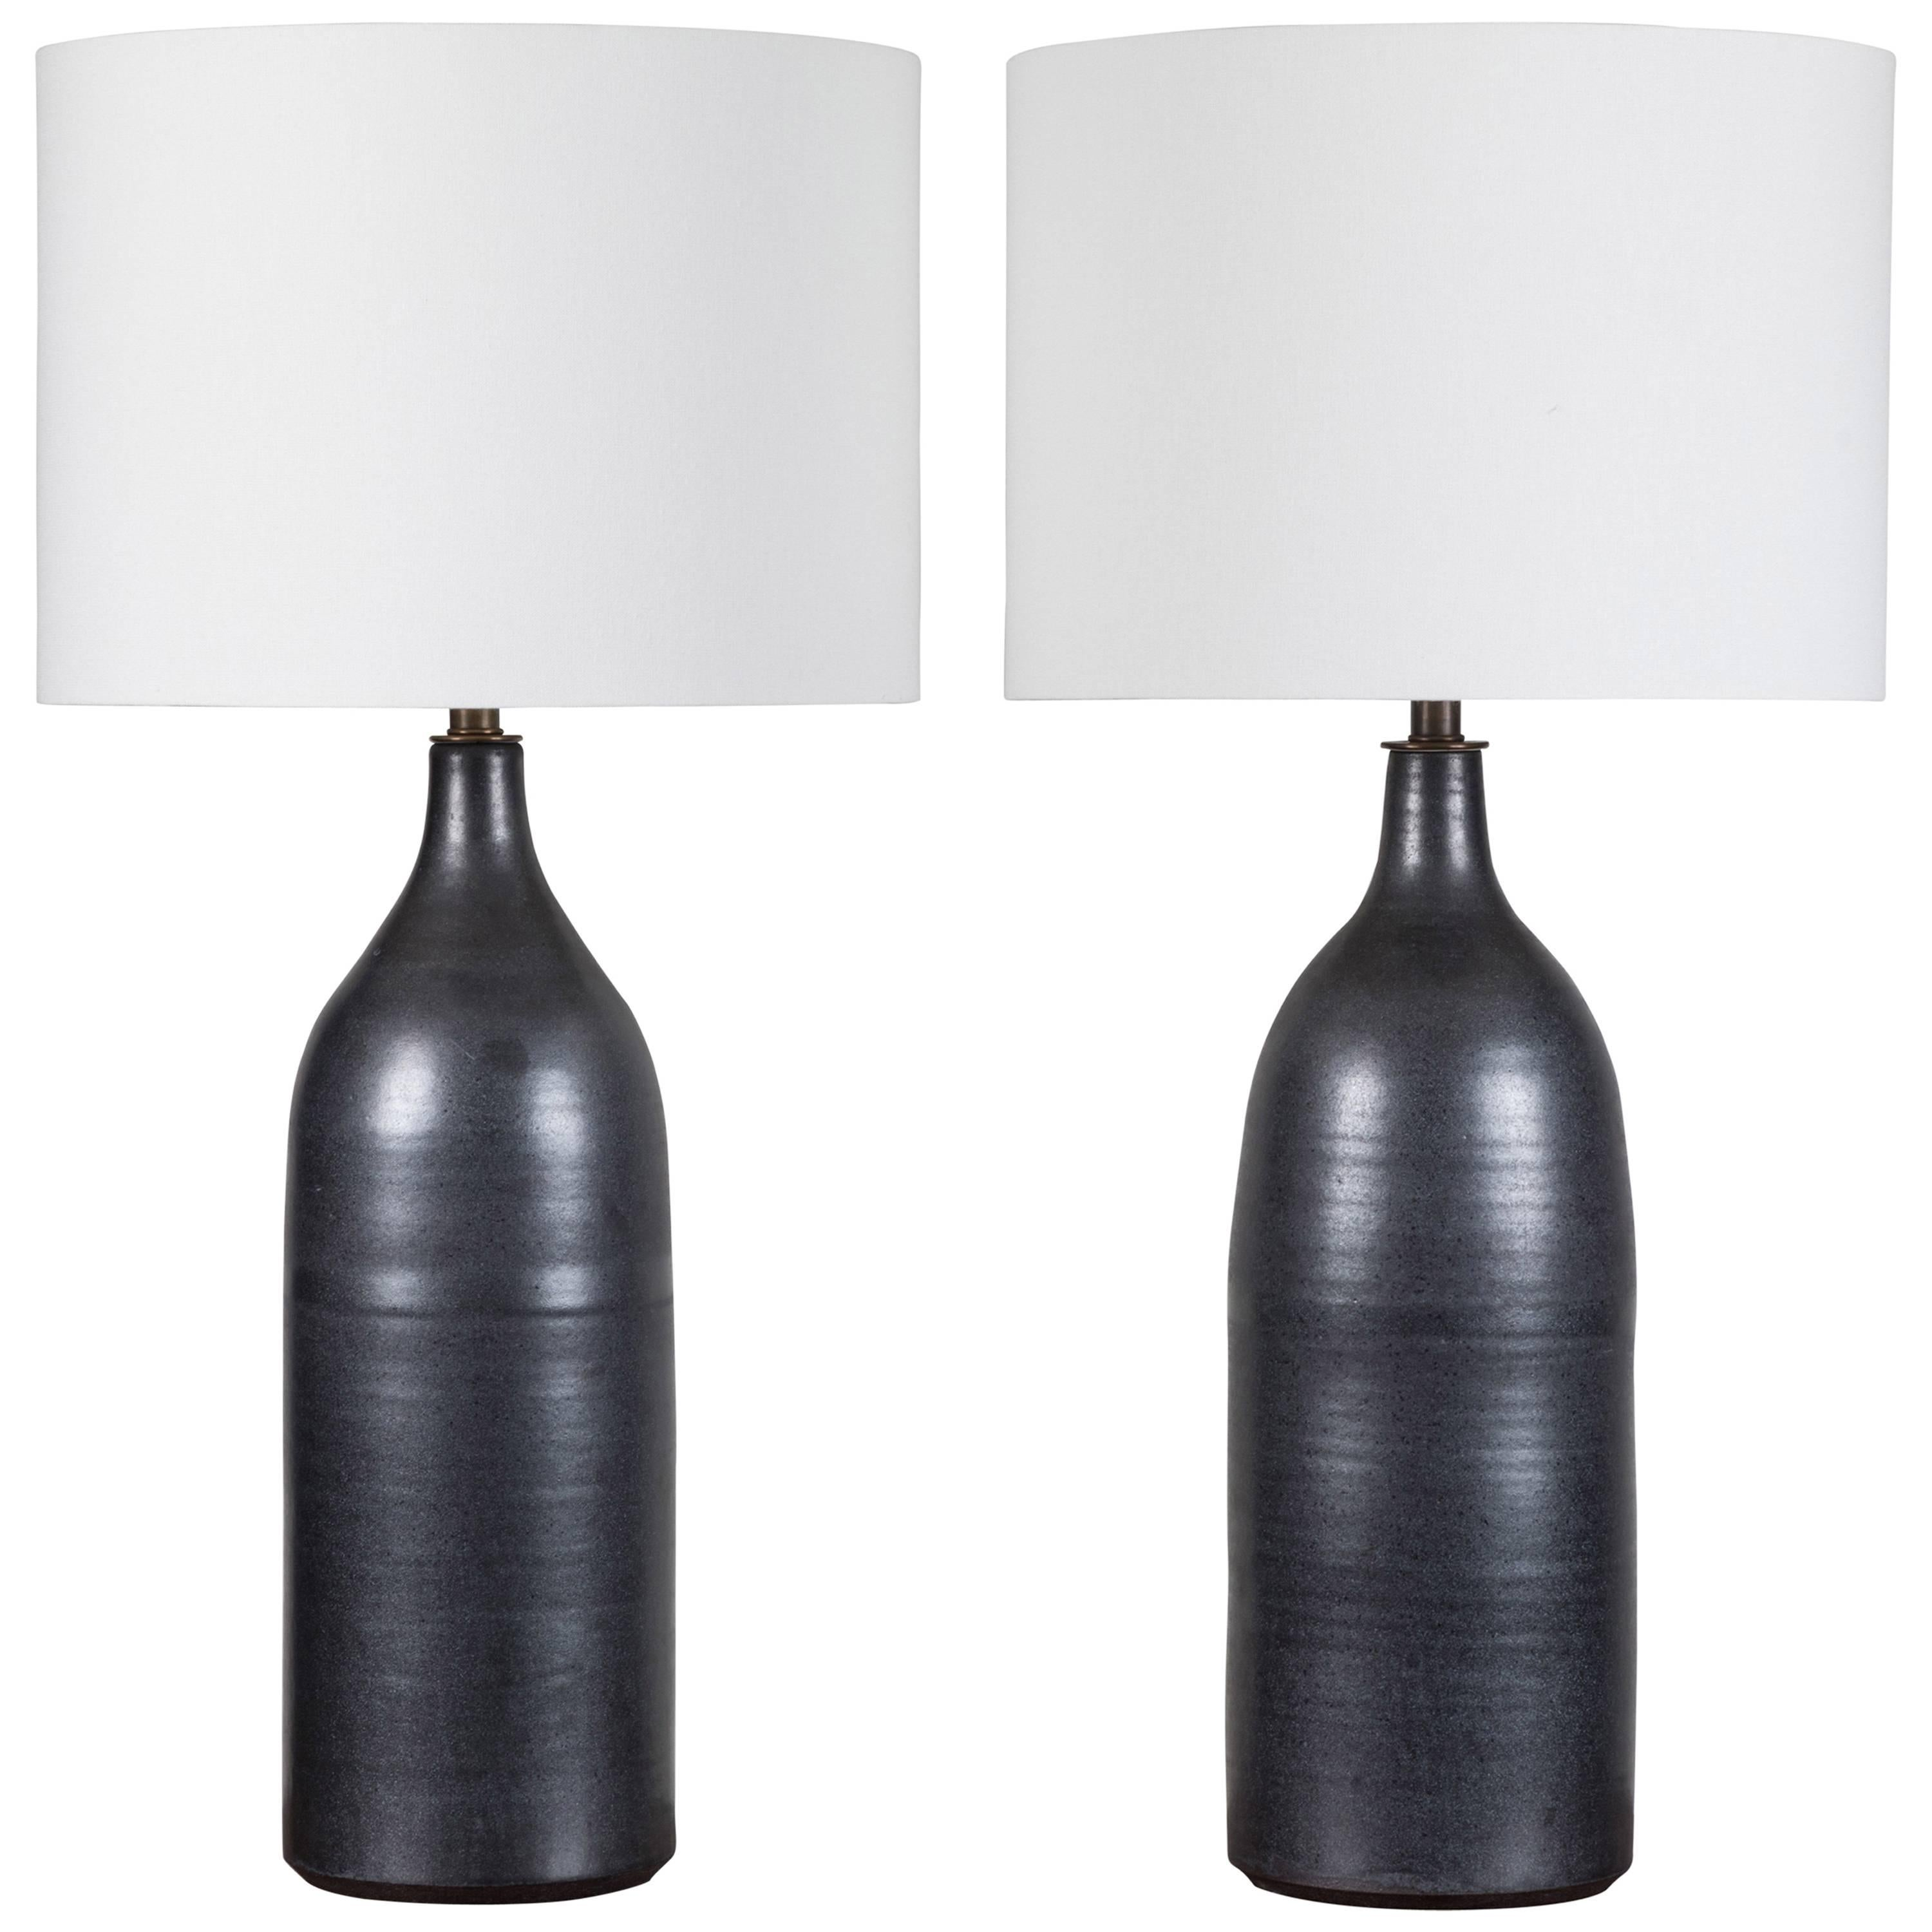 Extra Large Bottle Lamp by Victoria Morris for Lawson-Fenning